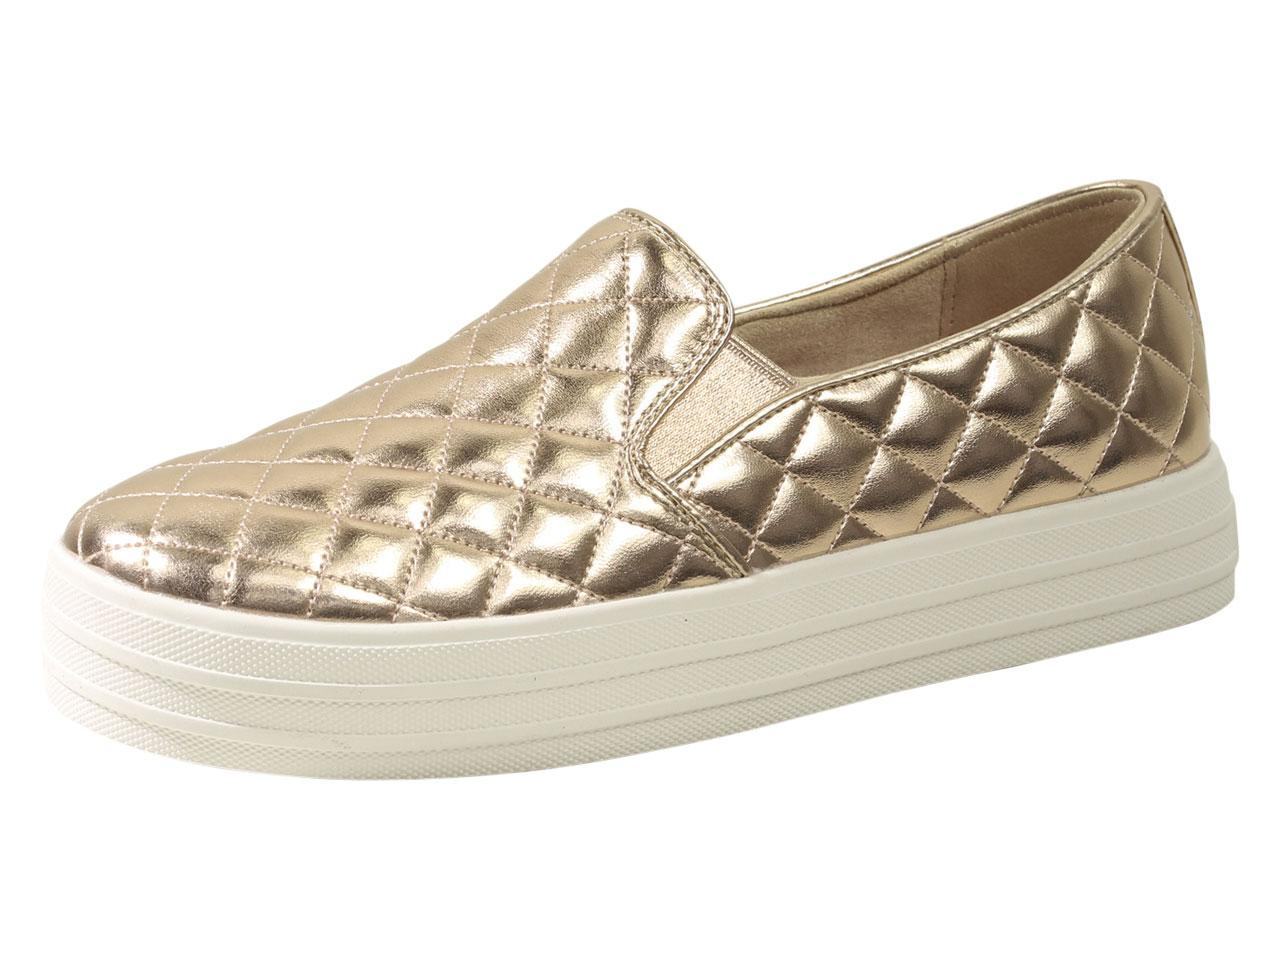 b40b2fd8f7eb Skechers Women s Double Up Duvet Memory Foam Loafers Shoes